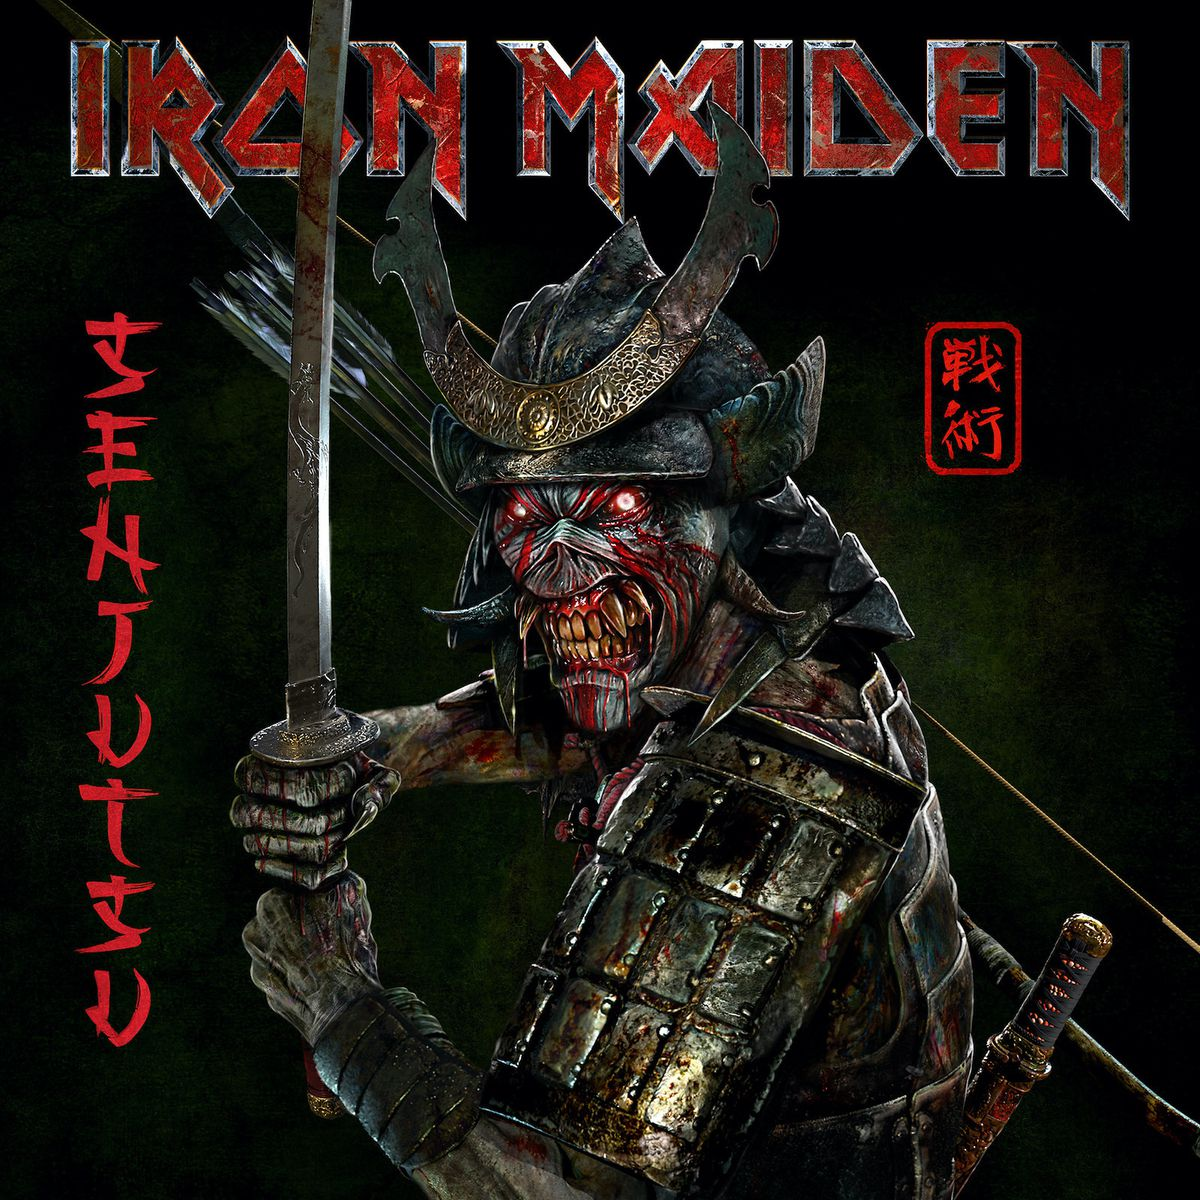 """This cover image released by BMG/Parlophone Records shows """"Senjutsu,"""" a release by Iron Maiden."""